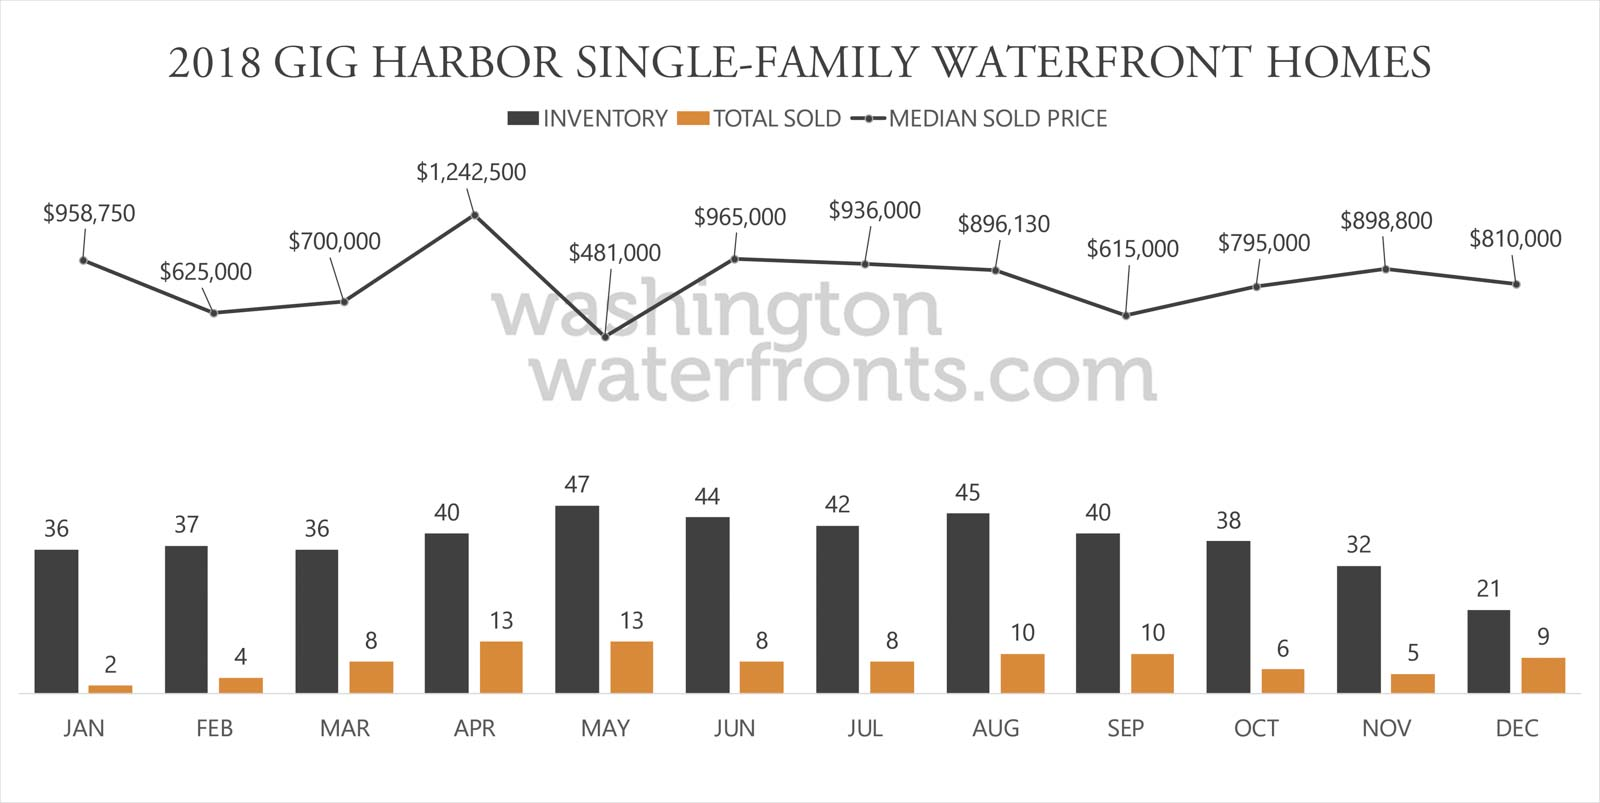 Gig Harbor Waterfront Inventory